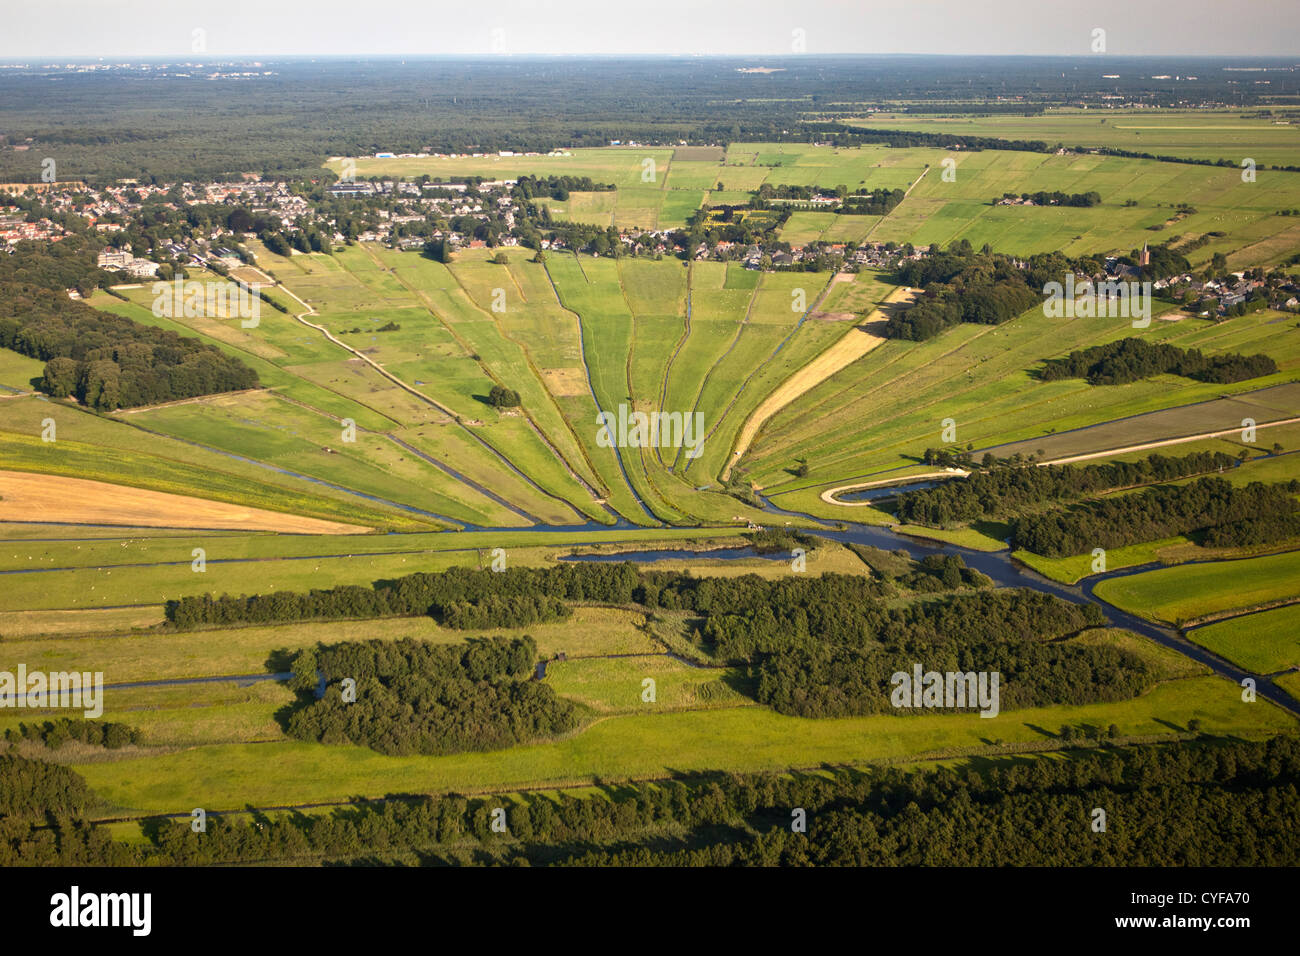 The Netherlands, Loosdrecht, Streams floating to small river called Drecht. Aerial. - Stock Image